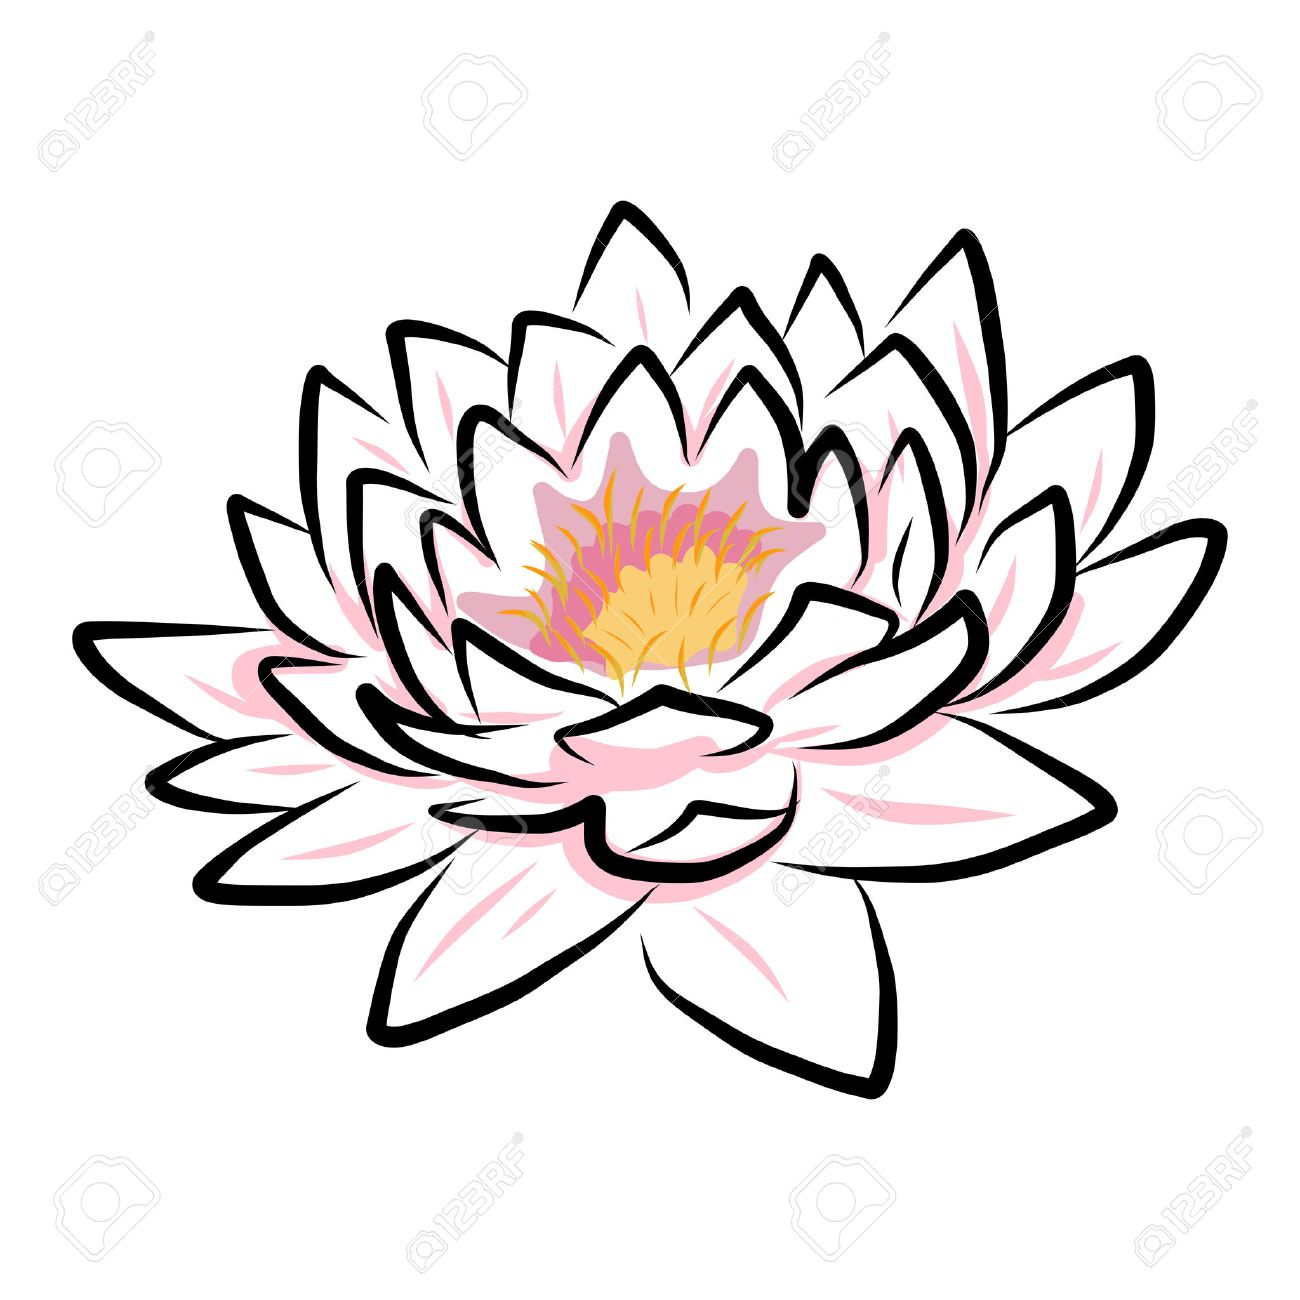 23864476 hand drawing water lily lotus flower vector eps10 stock 23864476 hand drawing water lily lotus flower vector eps10 stock vectorg 13001300 izmirmasajfo Image collections